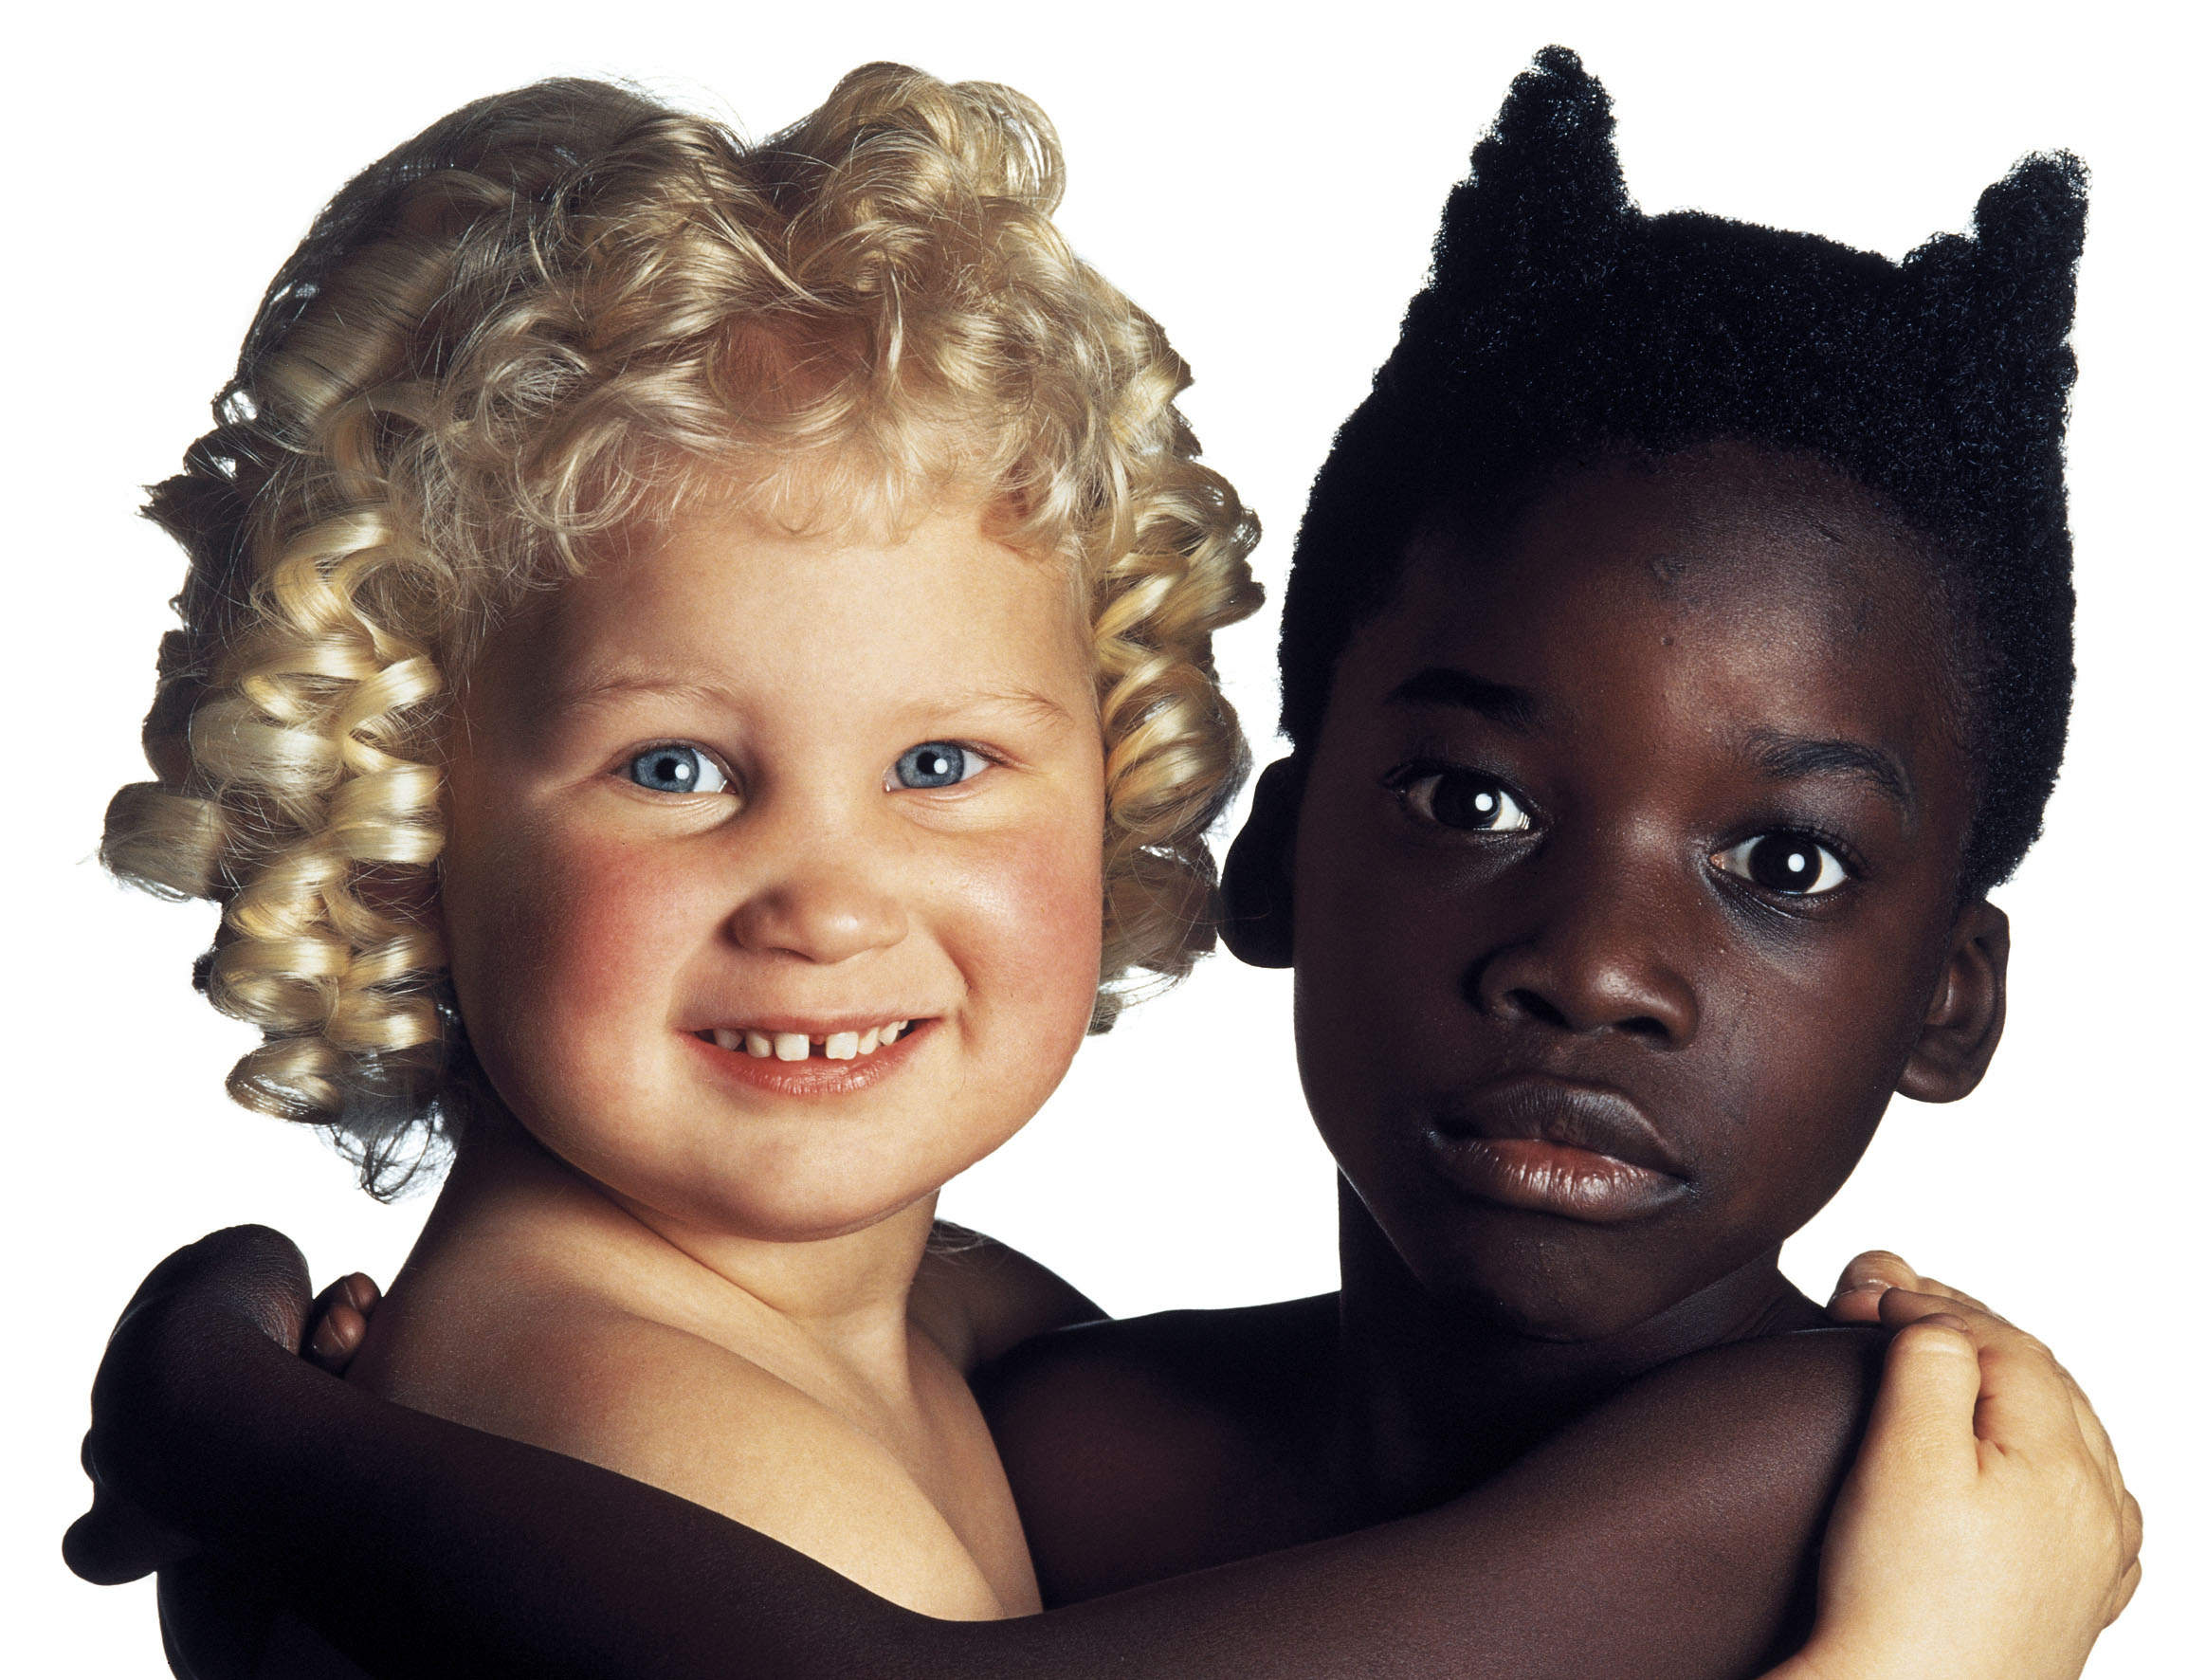 Oliviero Toscani, Angelo e Diavolo, United Colors of Benetton, 1992 © Studio Toscani